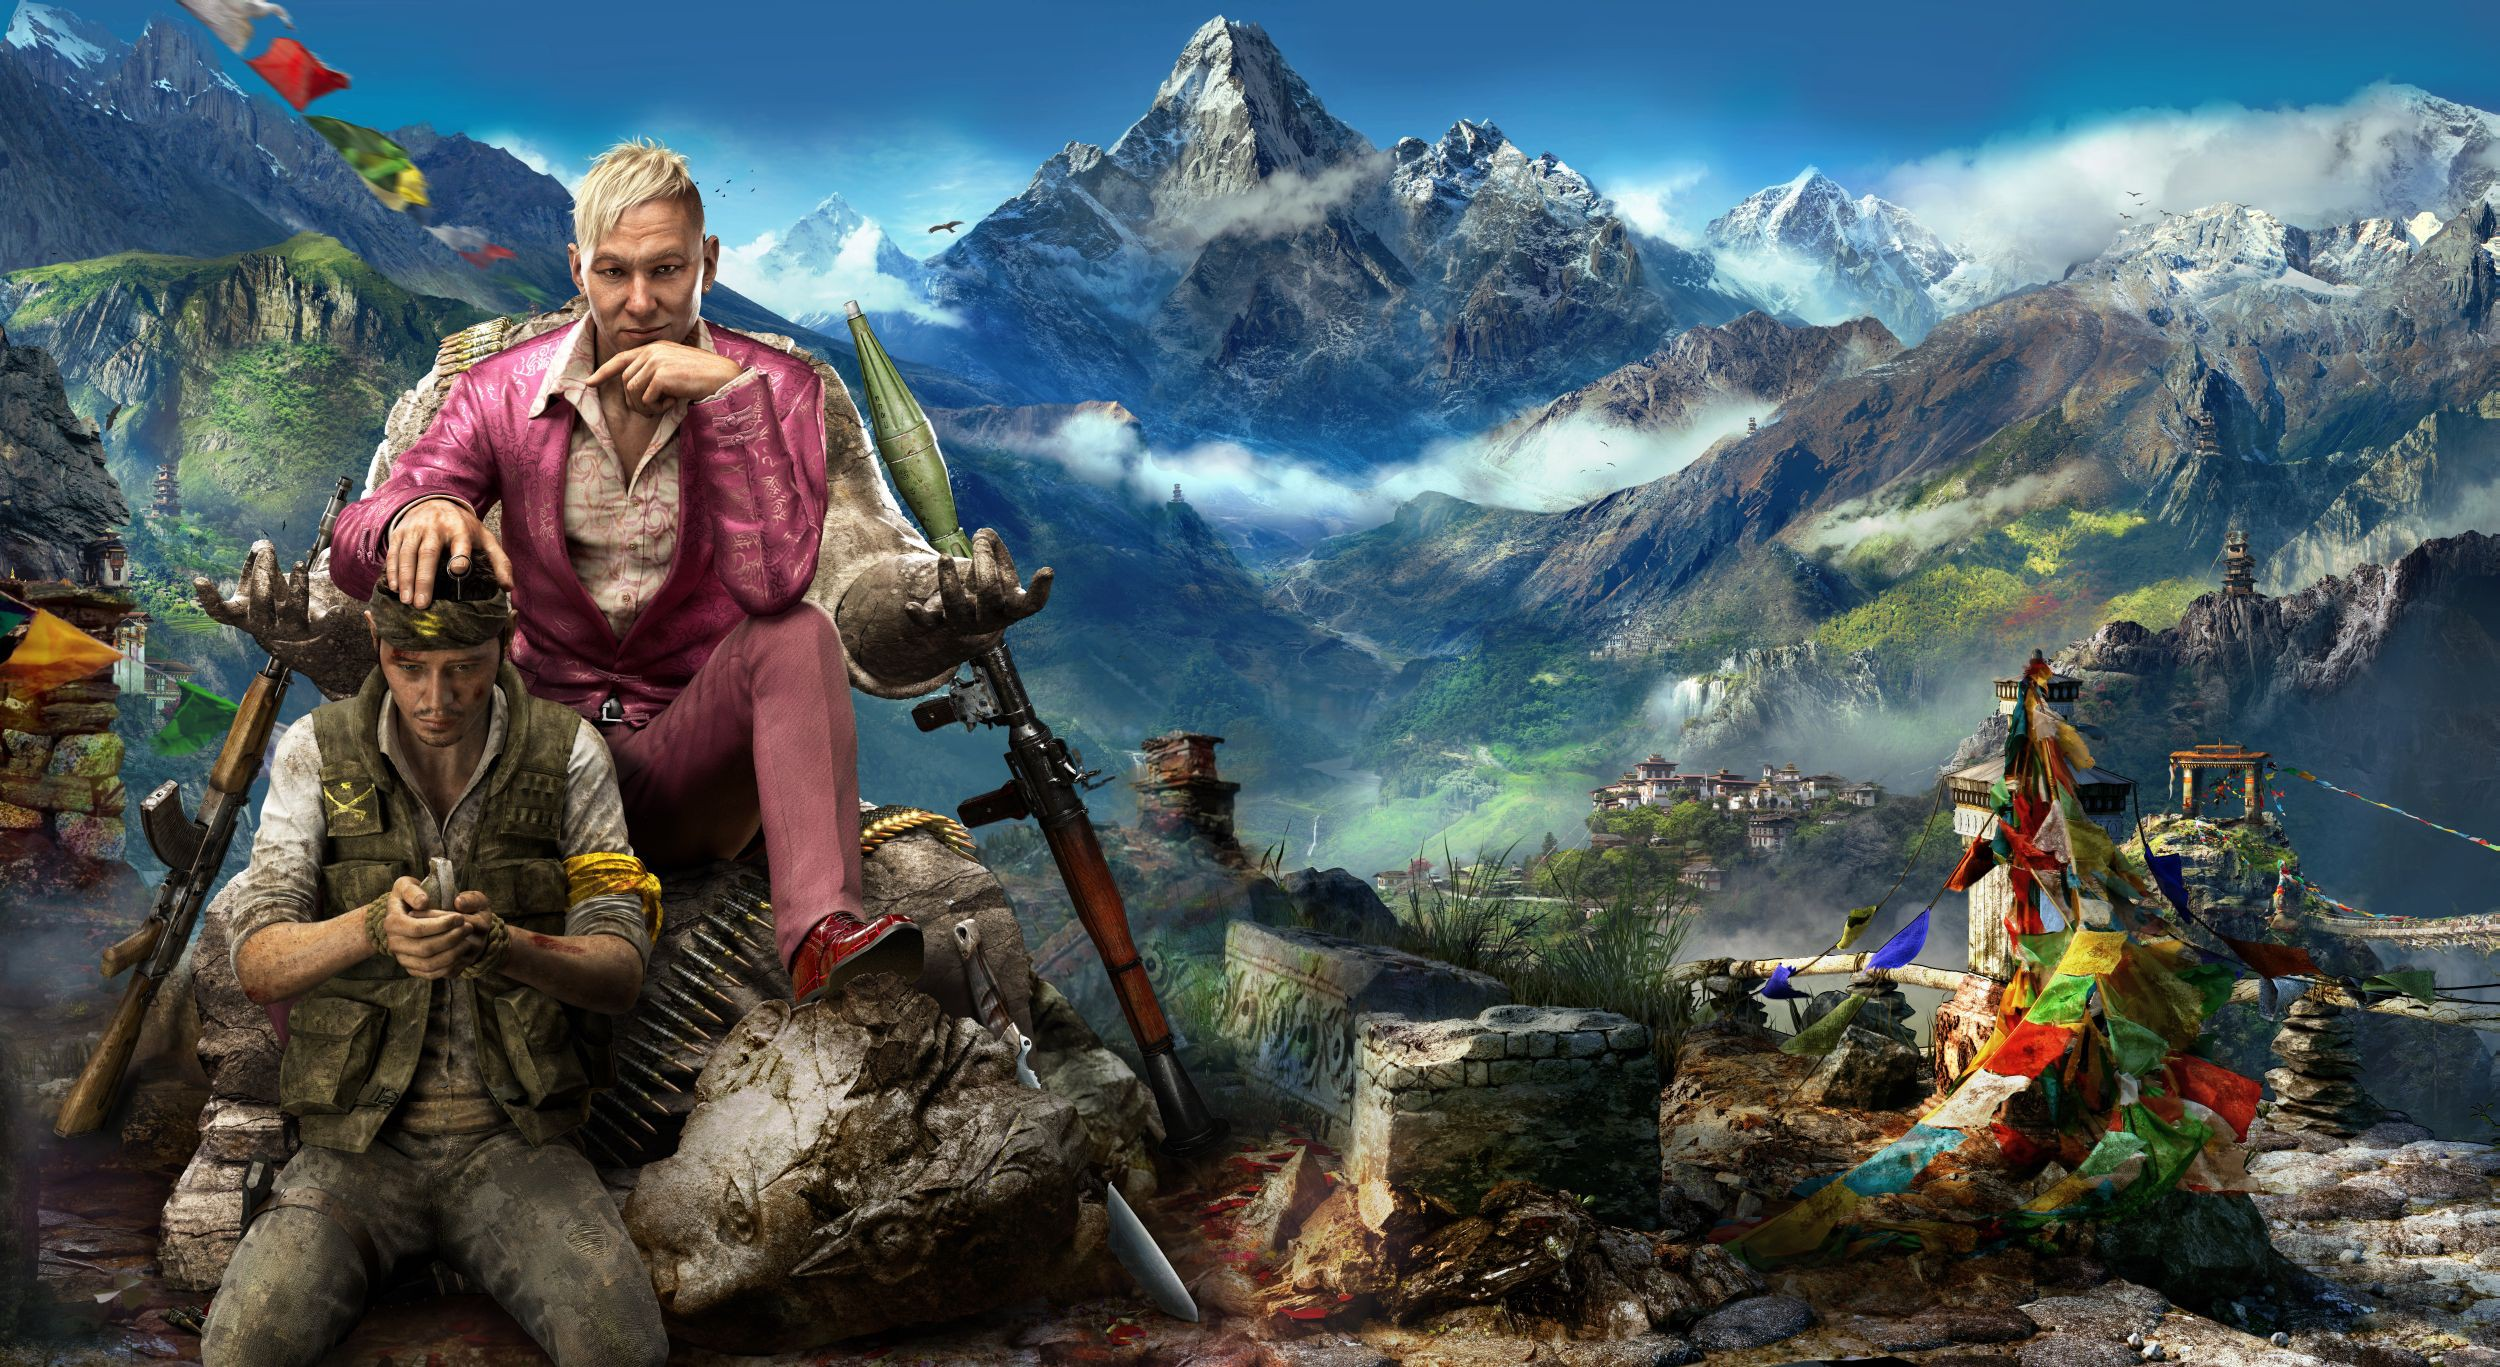 Far Cry 4 Wallpaper High Res